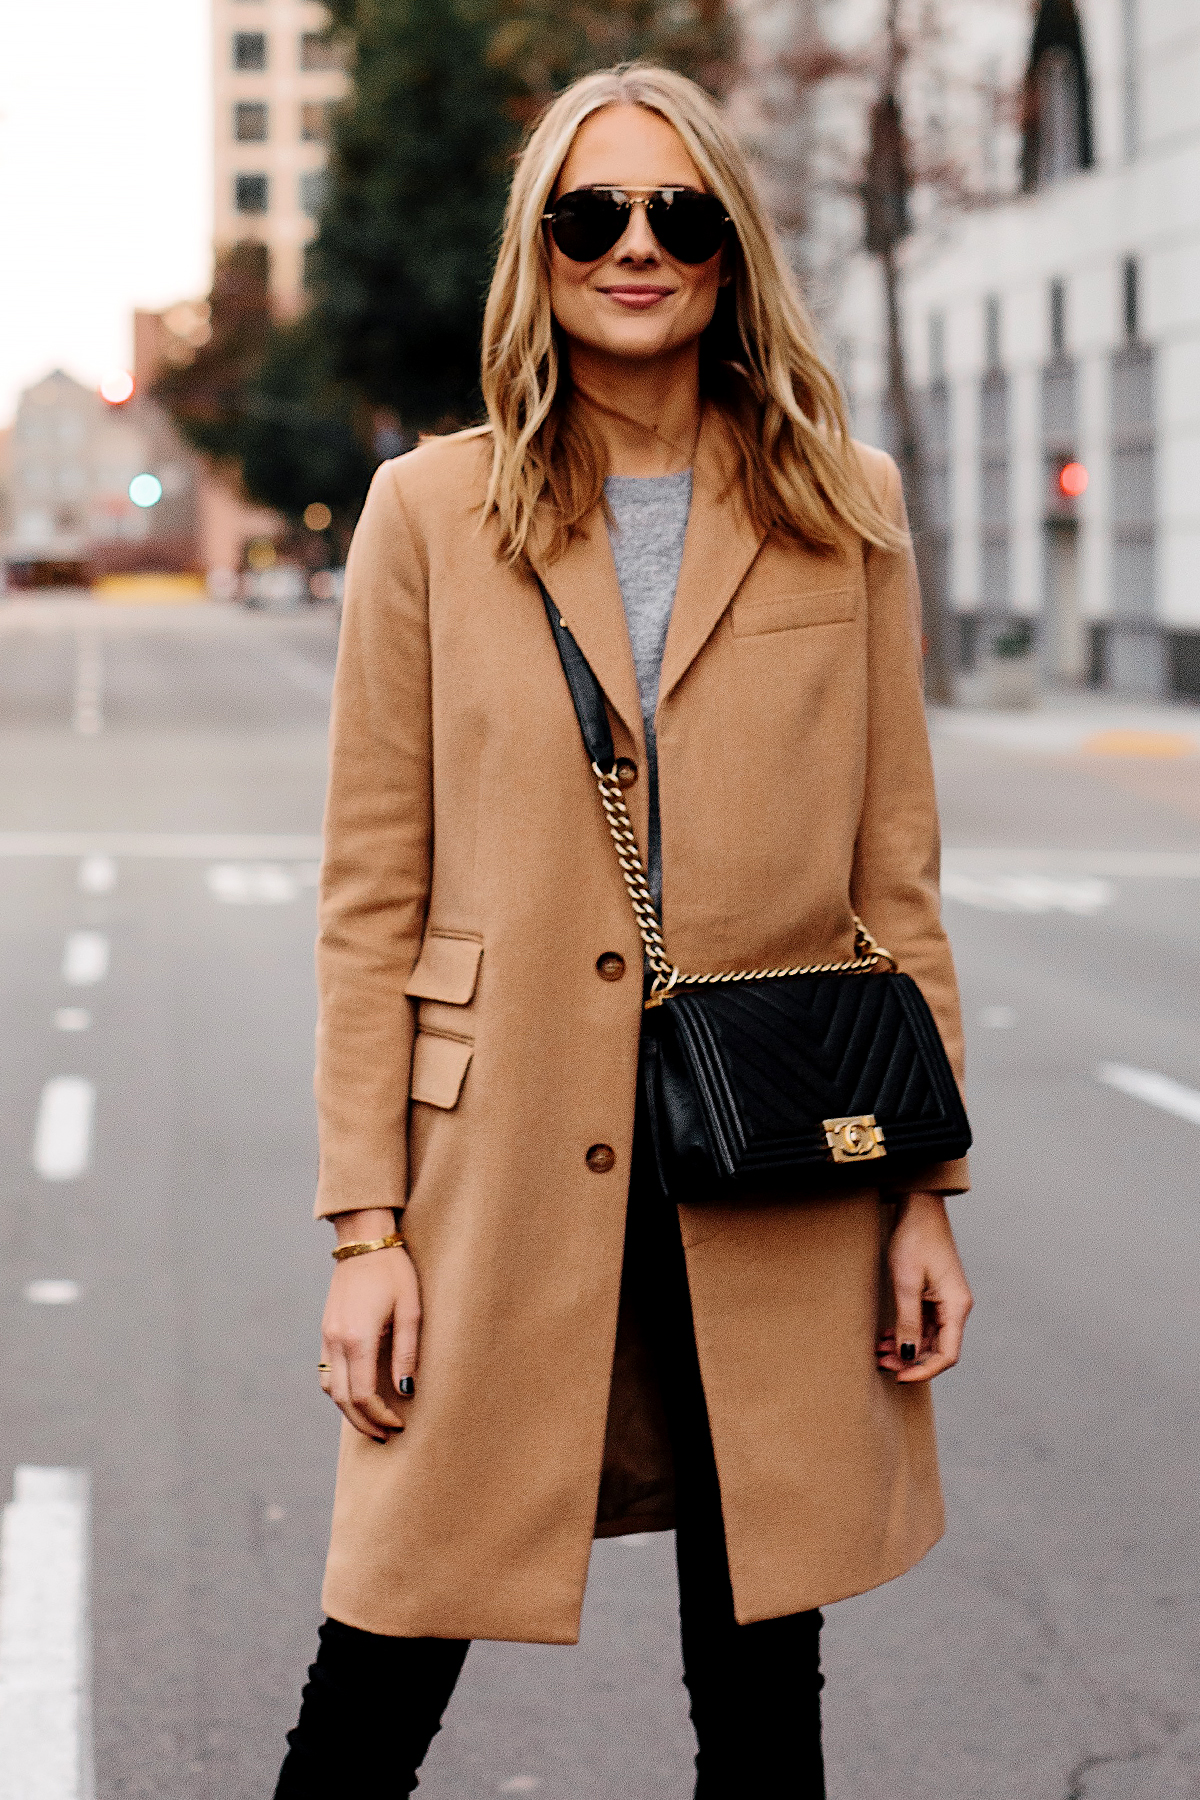 Blonde Woman Wearing Camel Coat Grey Sweater Black Skinny Jeans Outfit Chanel Black Boy Bag Fashion Jackson San Diego Fashion Blogger Street Style